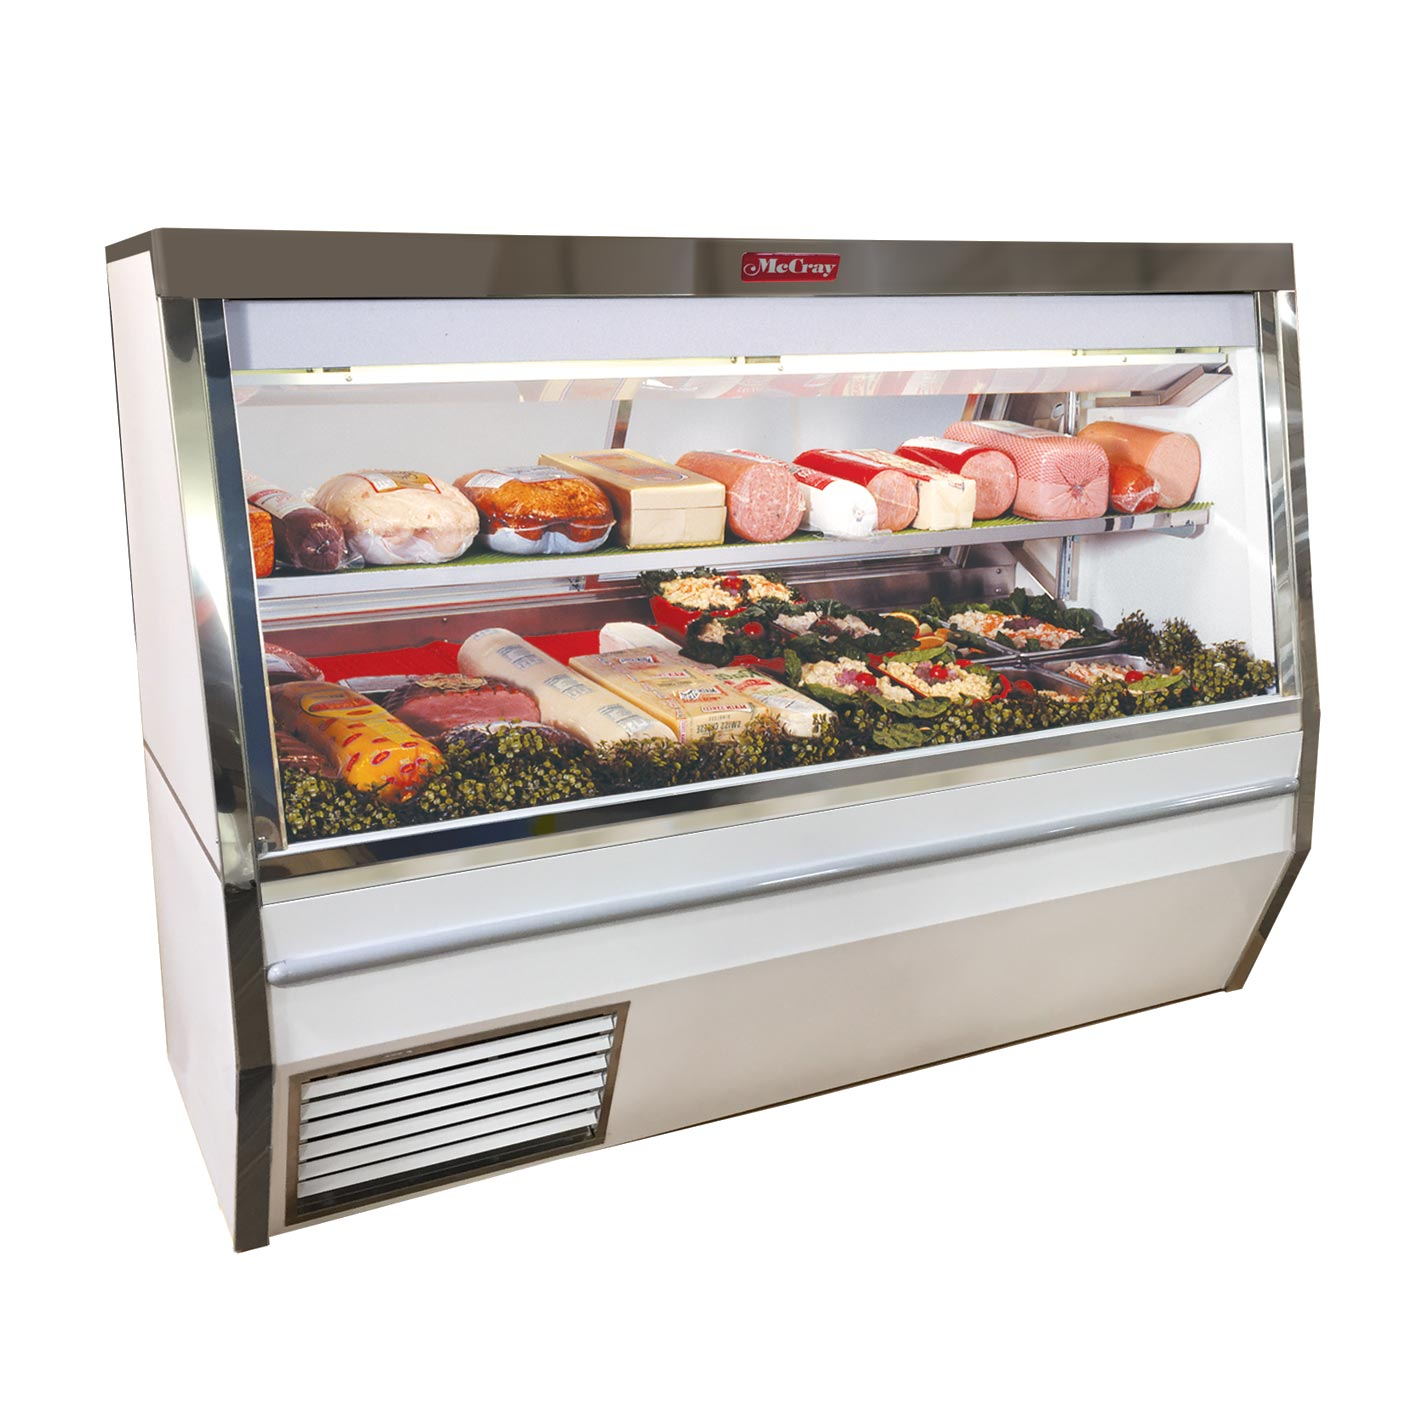 Howard-McCray R-CDS34N-6-BE-LS-LED display case, refrigerated deli